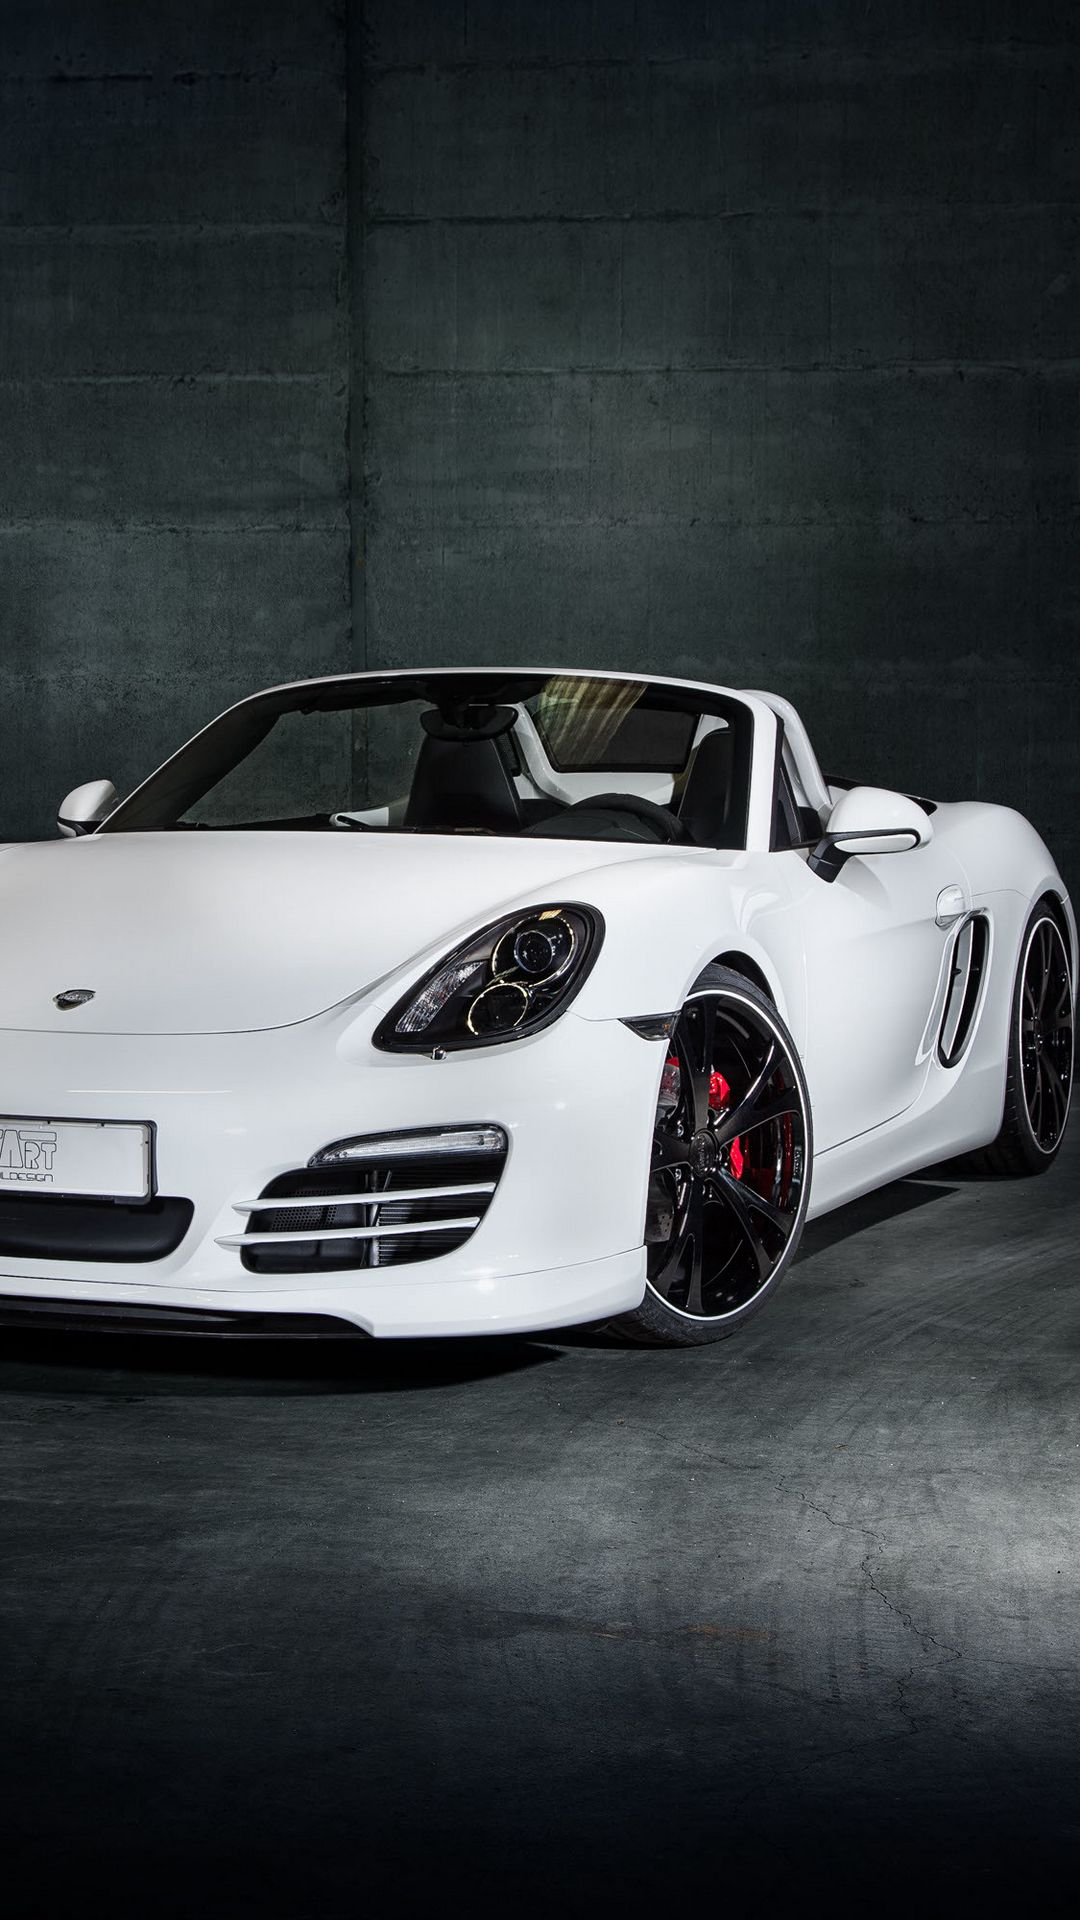 Porsche Boxster Wallpapers Free Download for Phone & iPhone